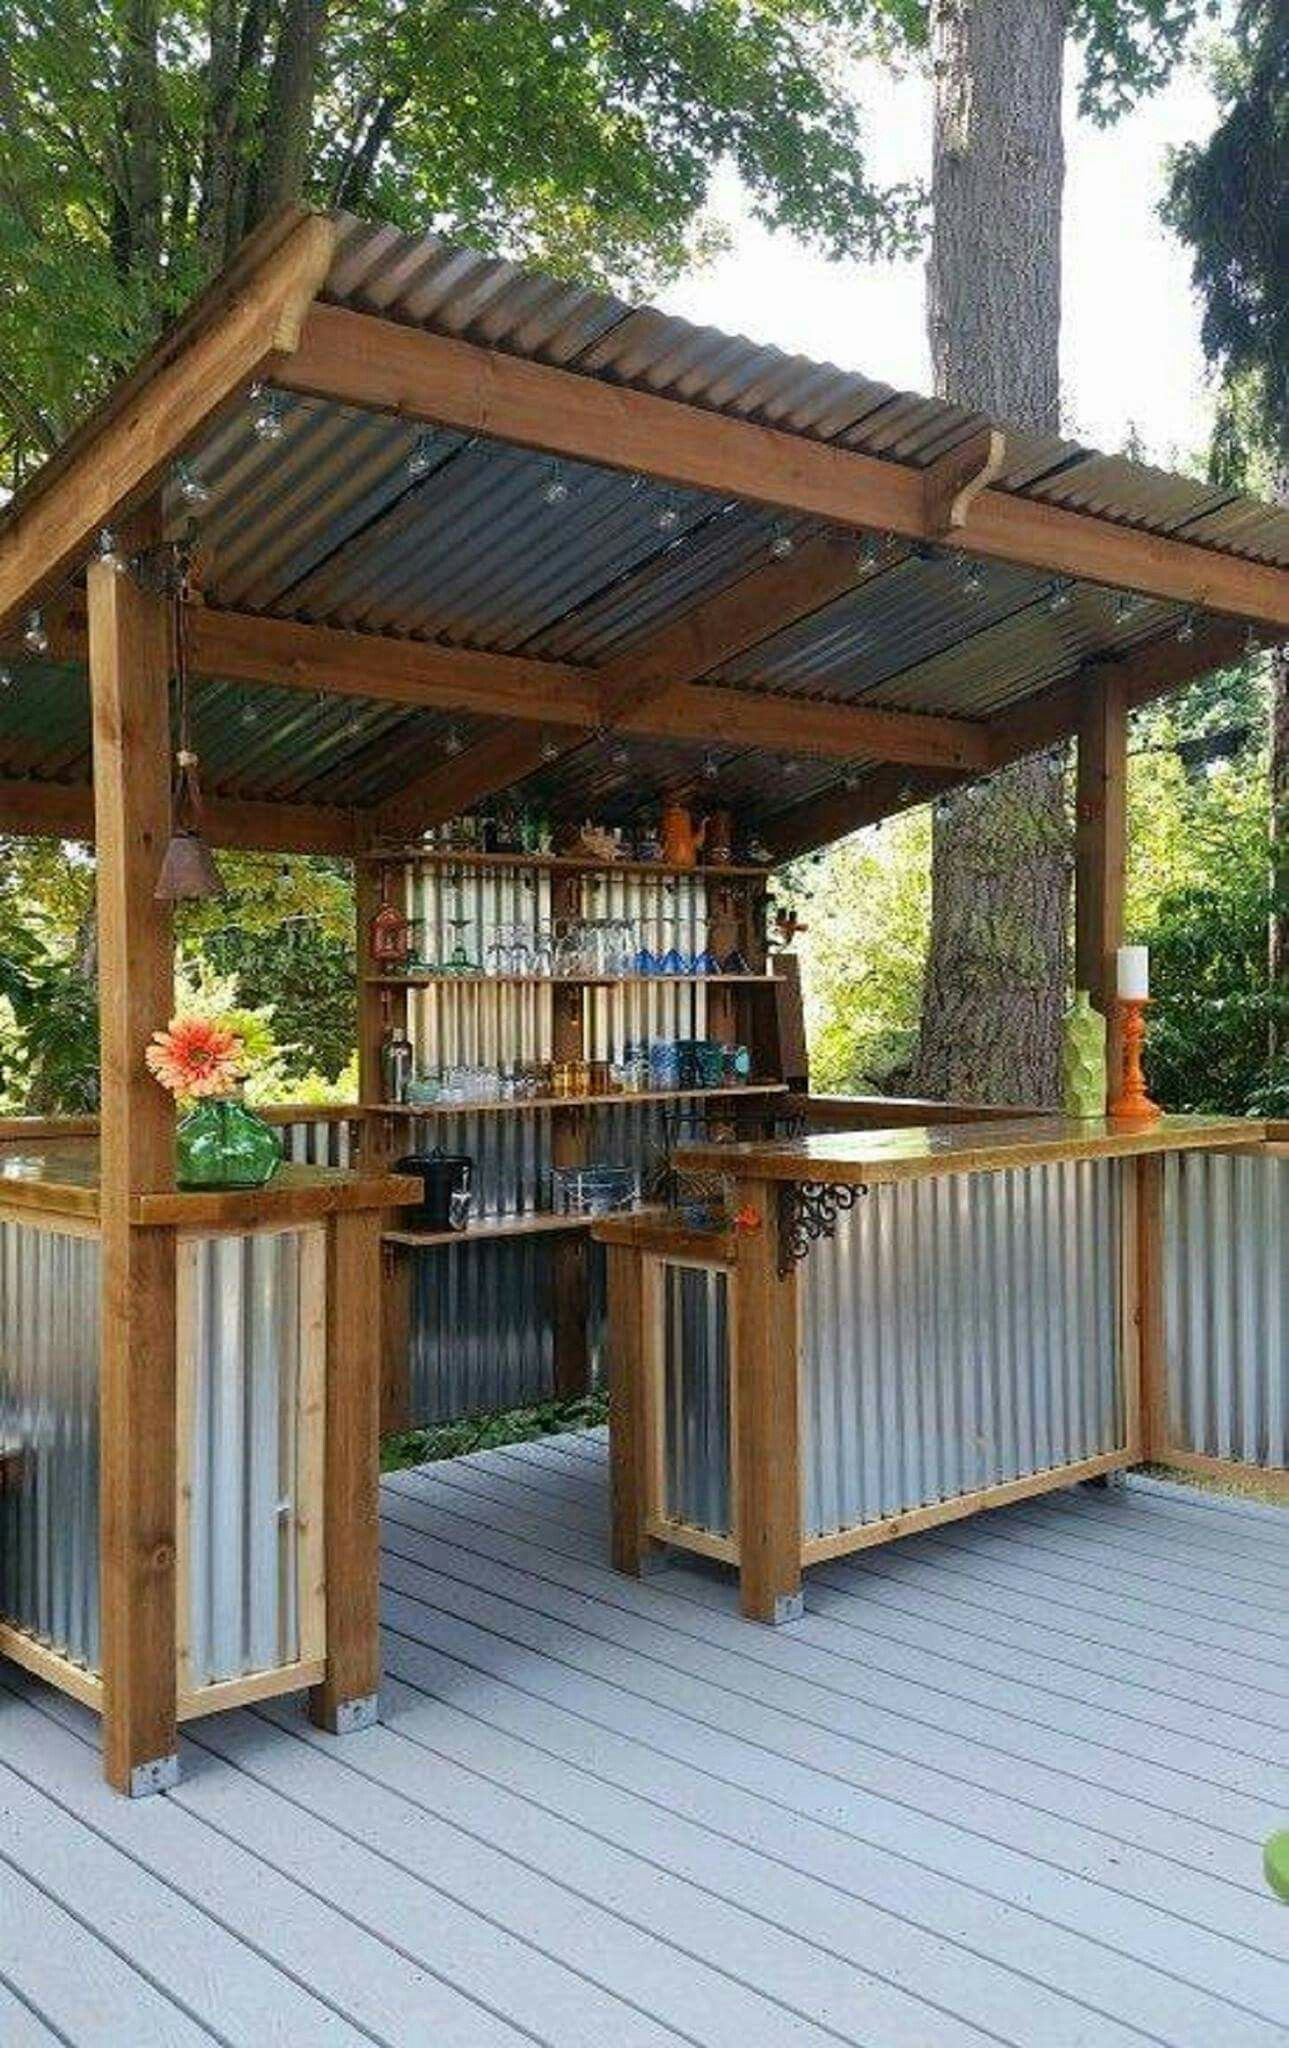 Backyard Bar is the New BIG Thing in the Market